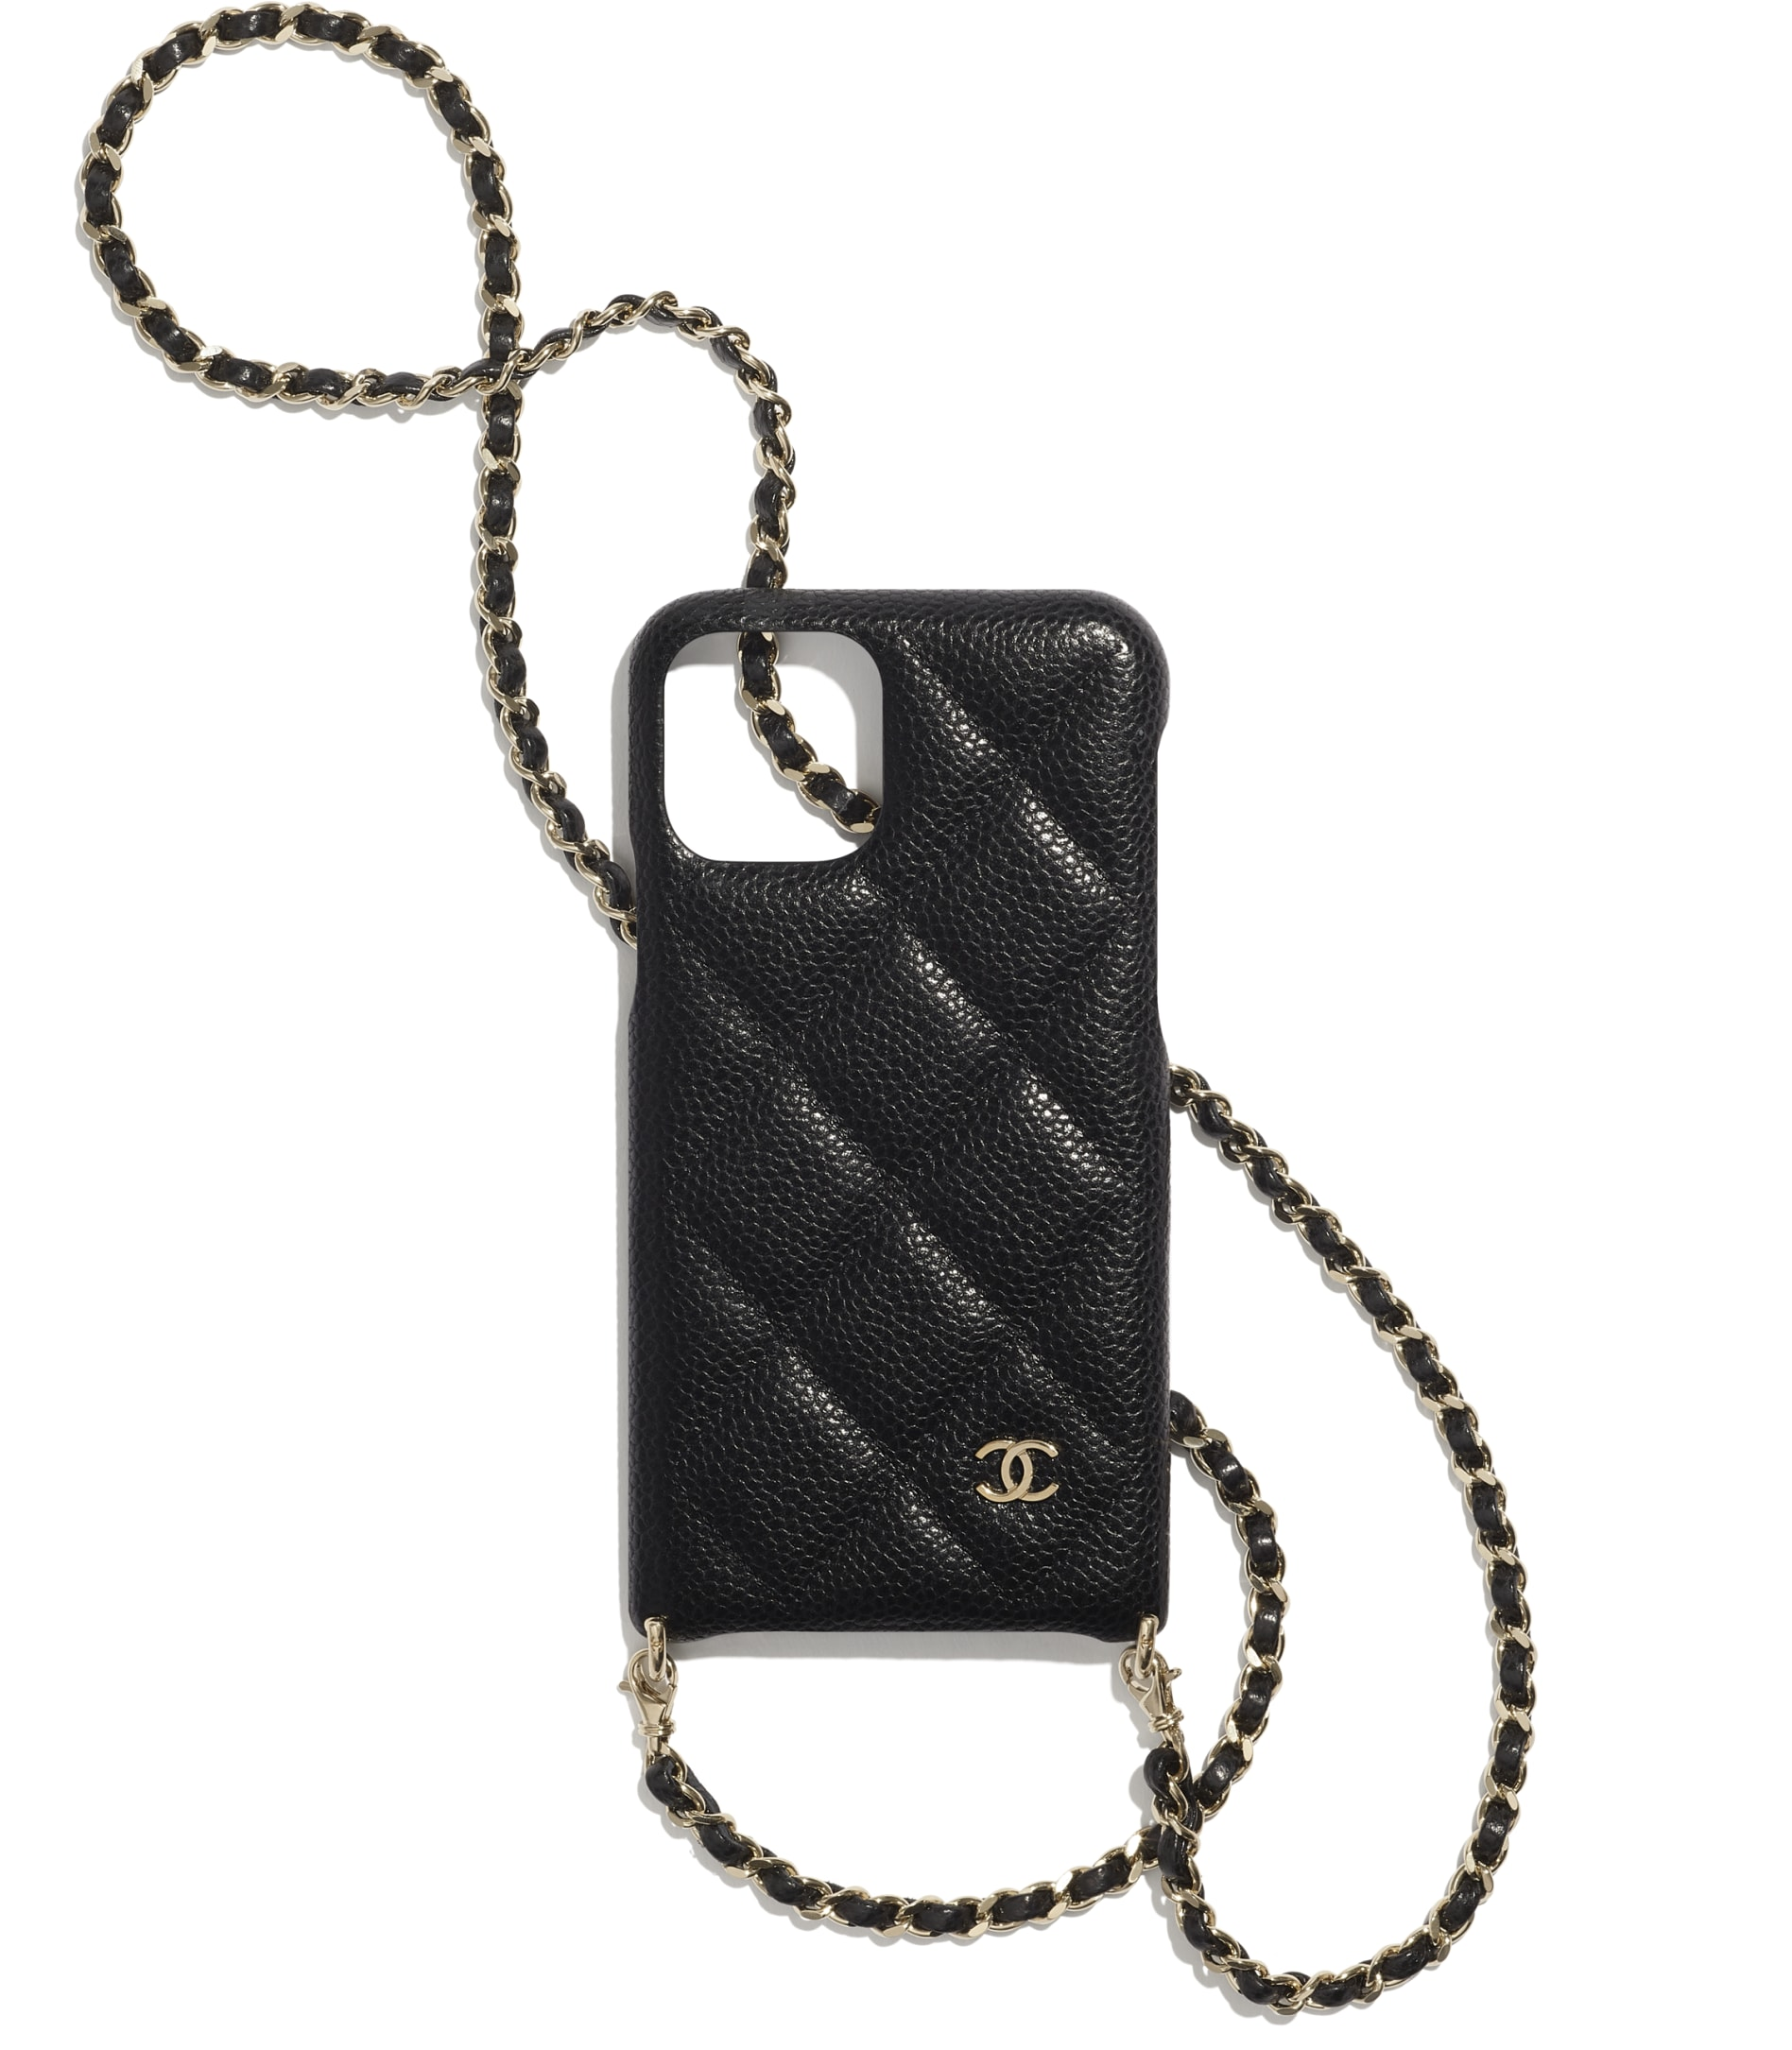 Case for iPhone XI Pro with Chain